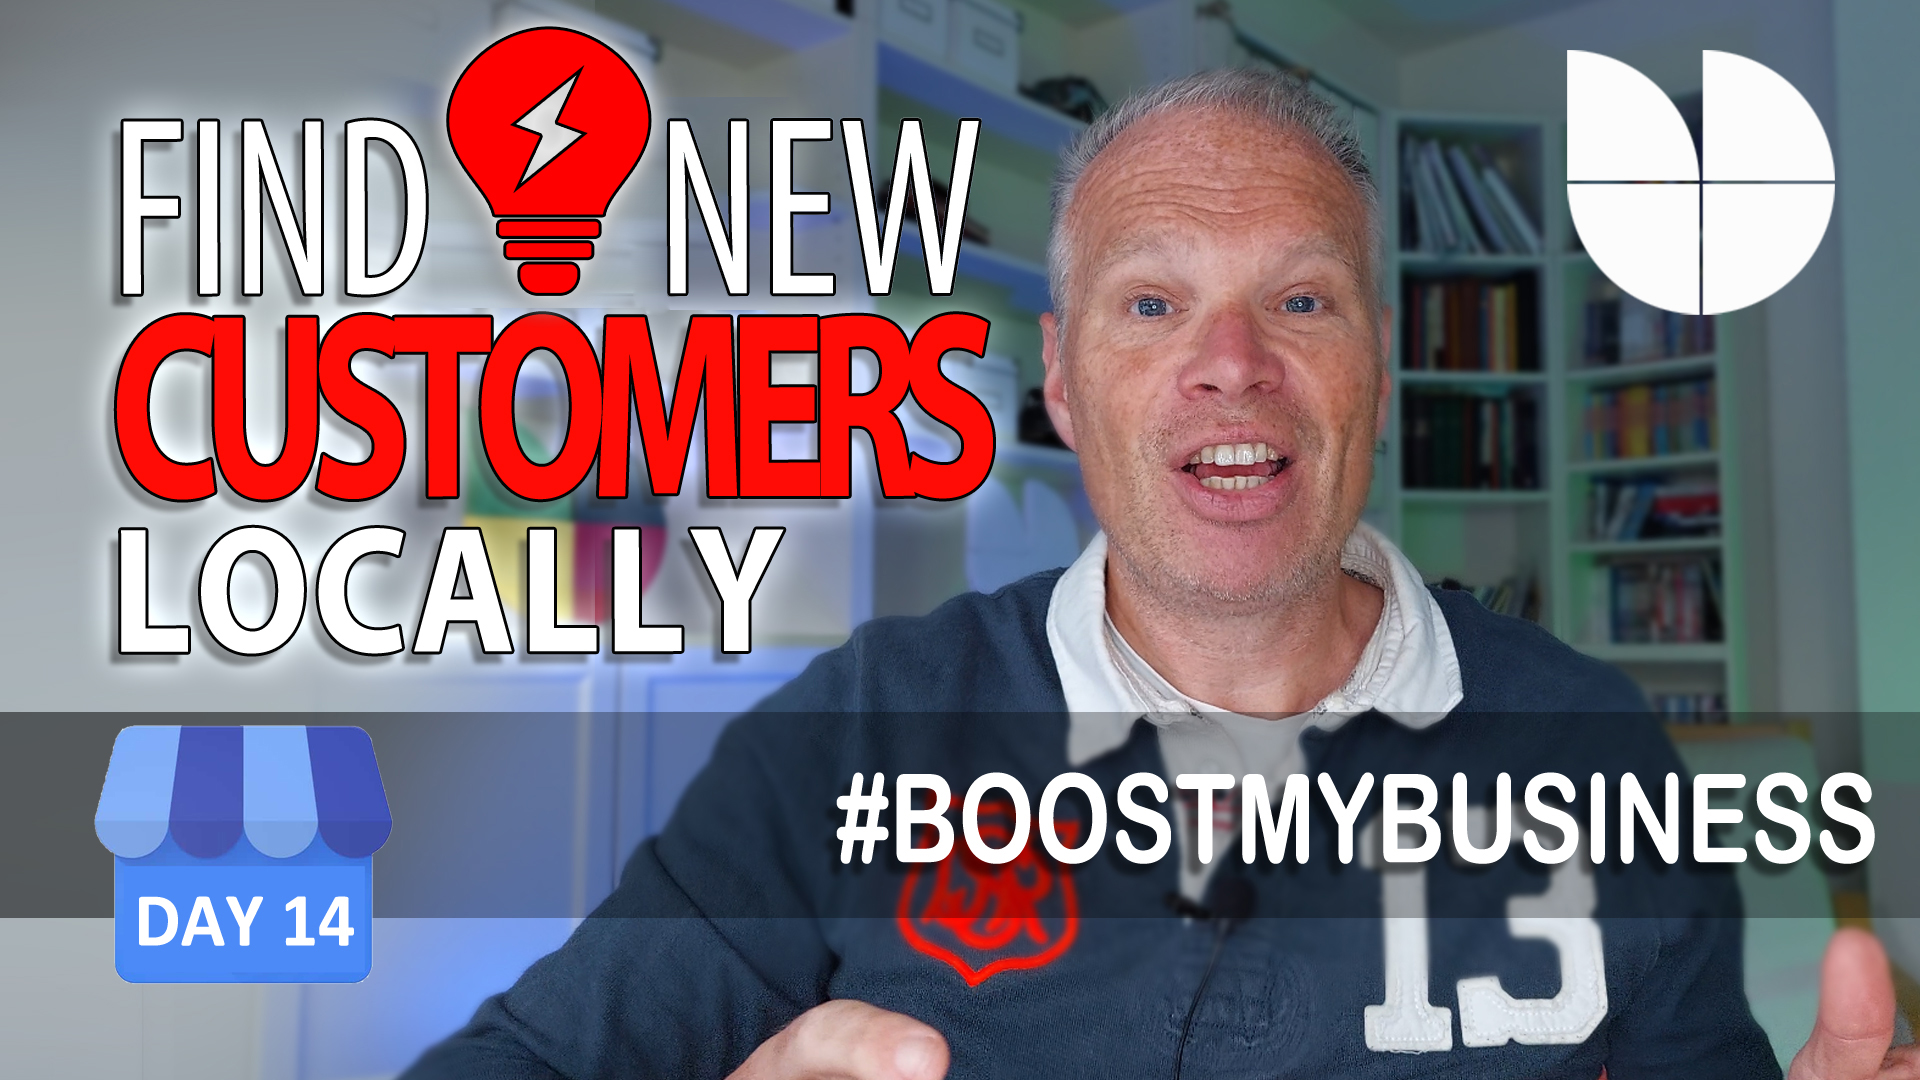 Find new customers